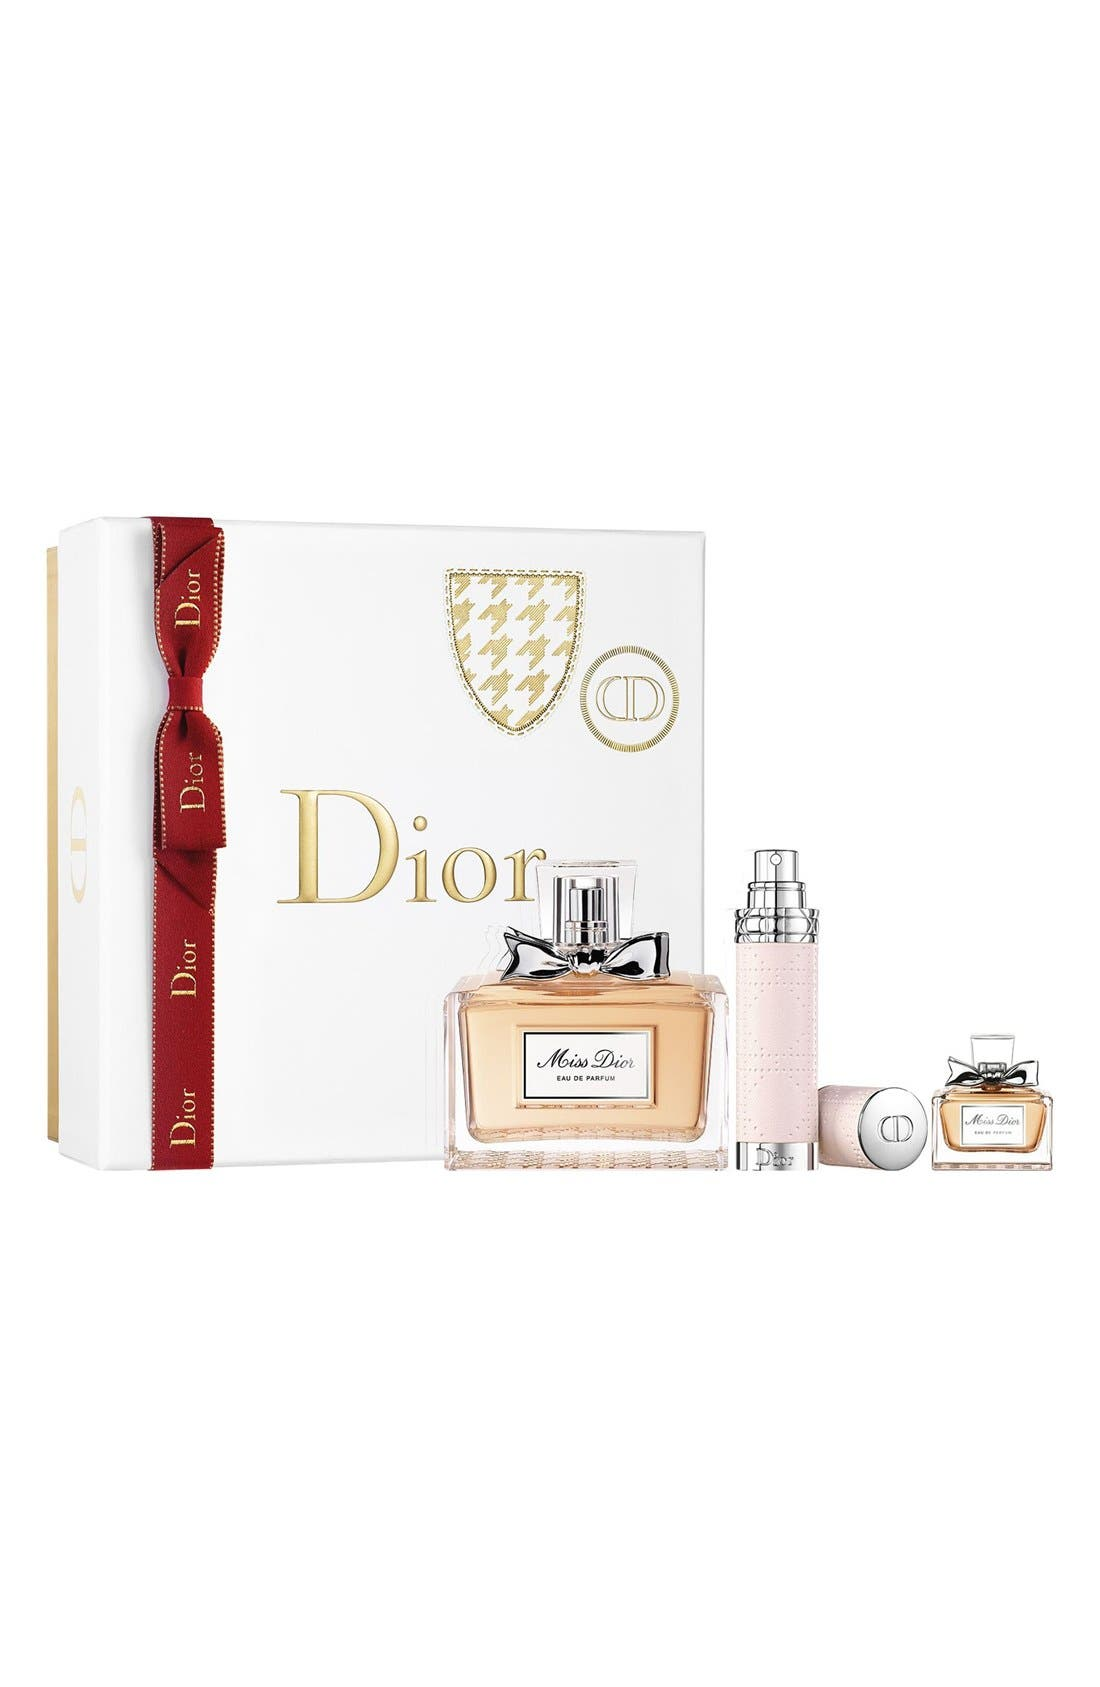 'Miss Dior' Eau de Parfum Deluxe Set,                         Main,                         color, 000